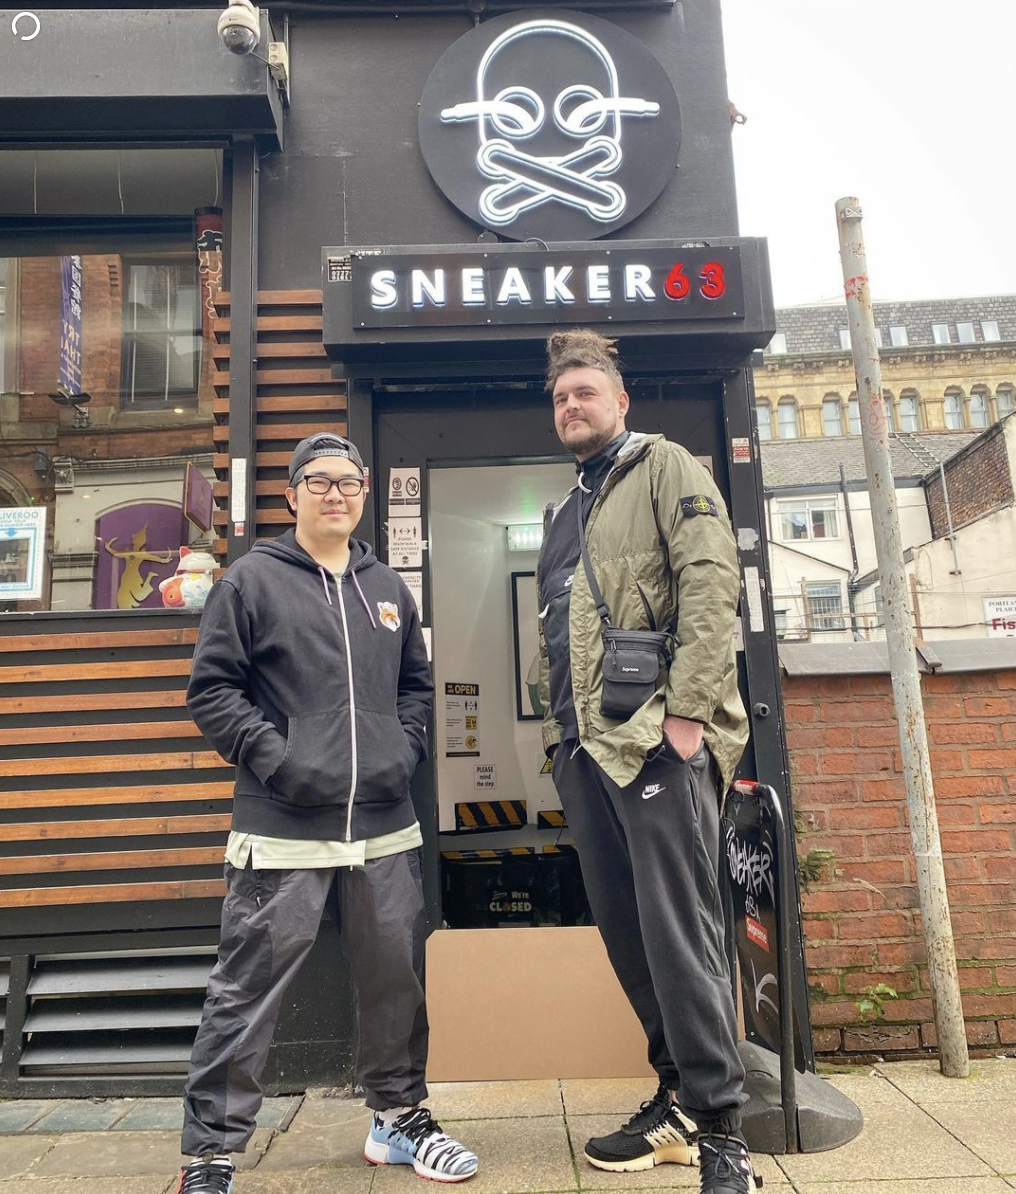 Beloved Manchester sneaker shop owner battling inoperable late-stage cancer has message for others, The Manc